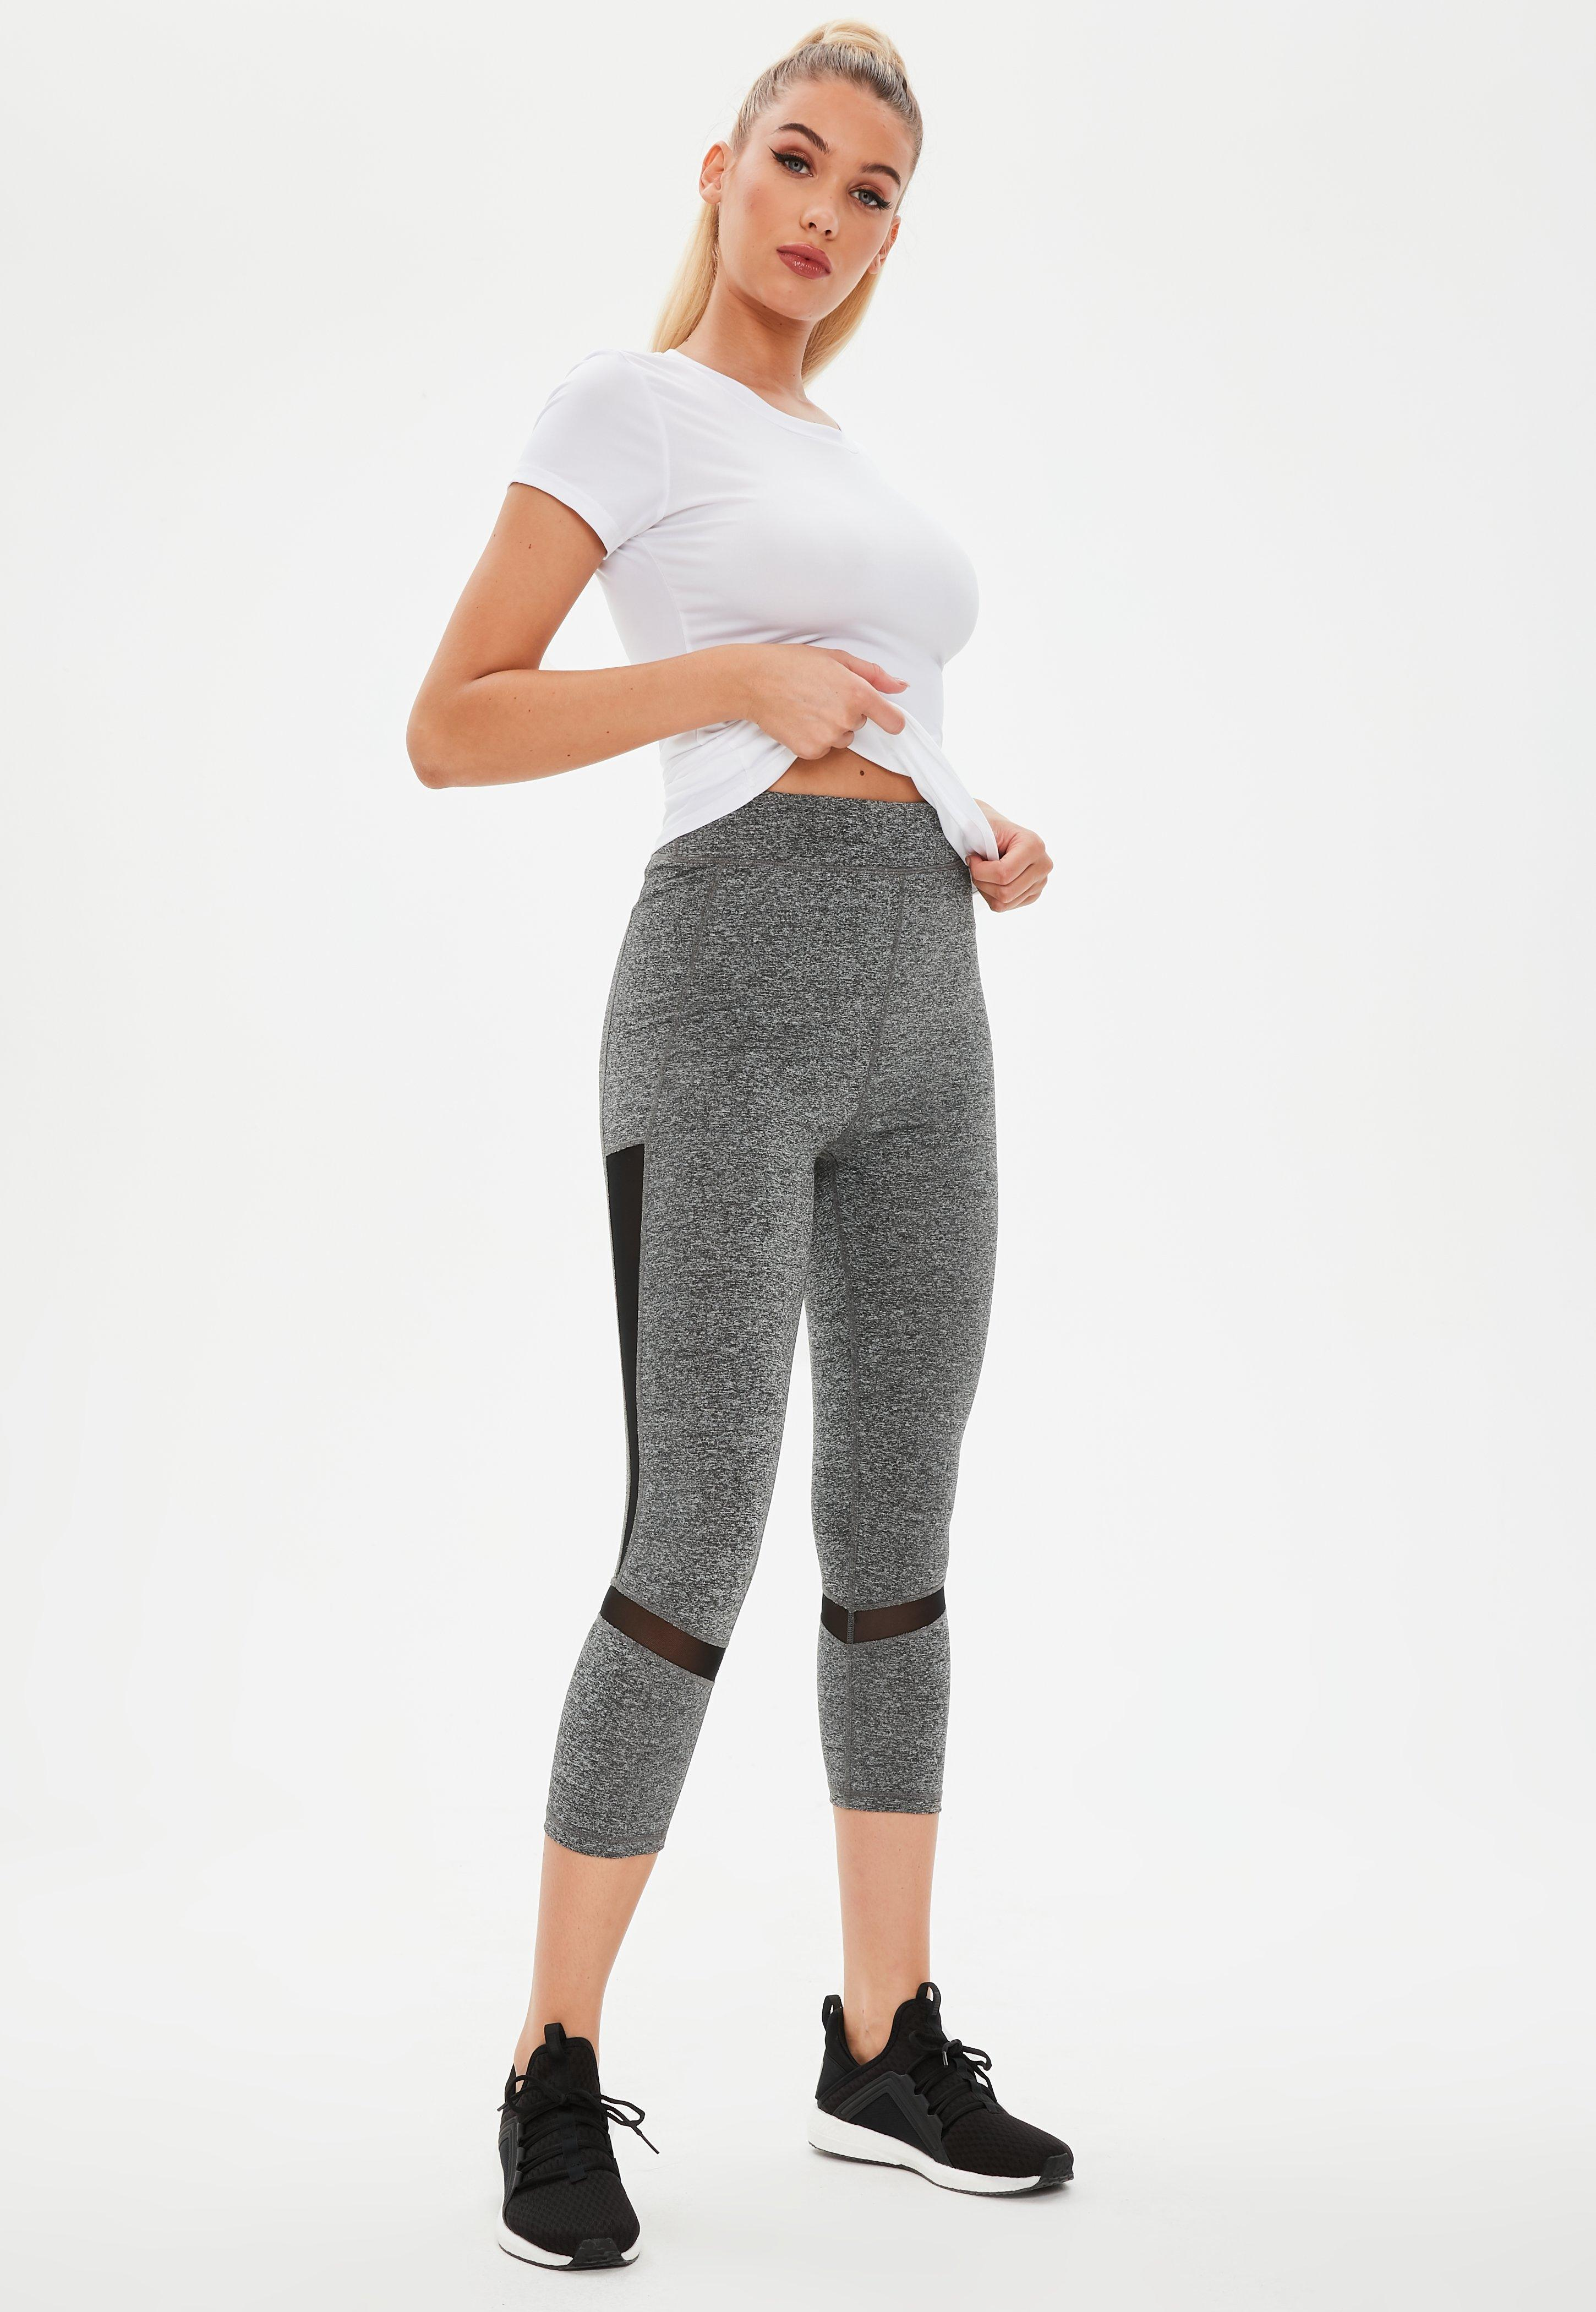 873a98319afd2 Lyst - Missguided Active Grey Mesh Cropped Gym Leggings in Gray